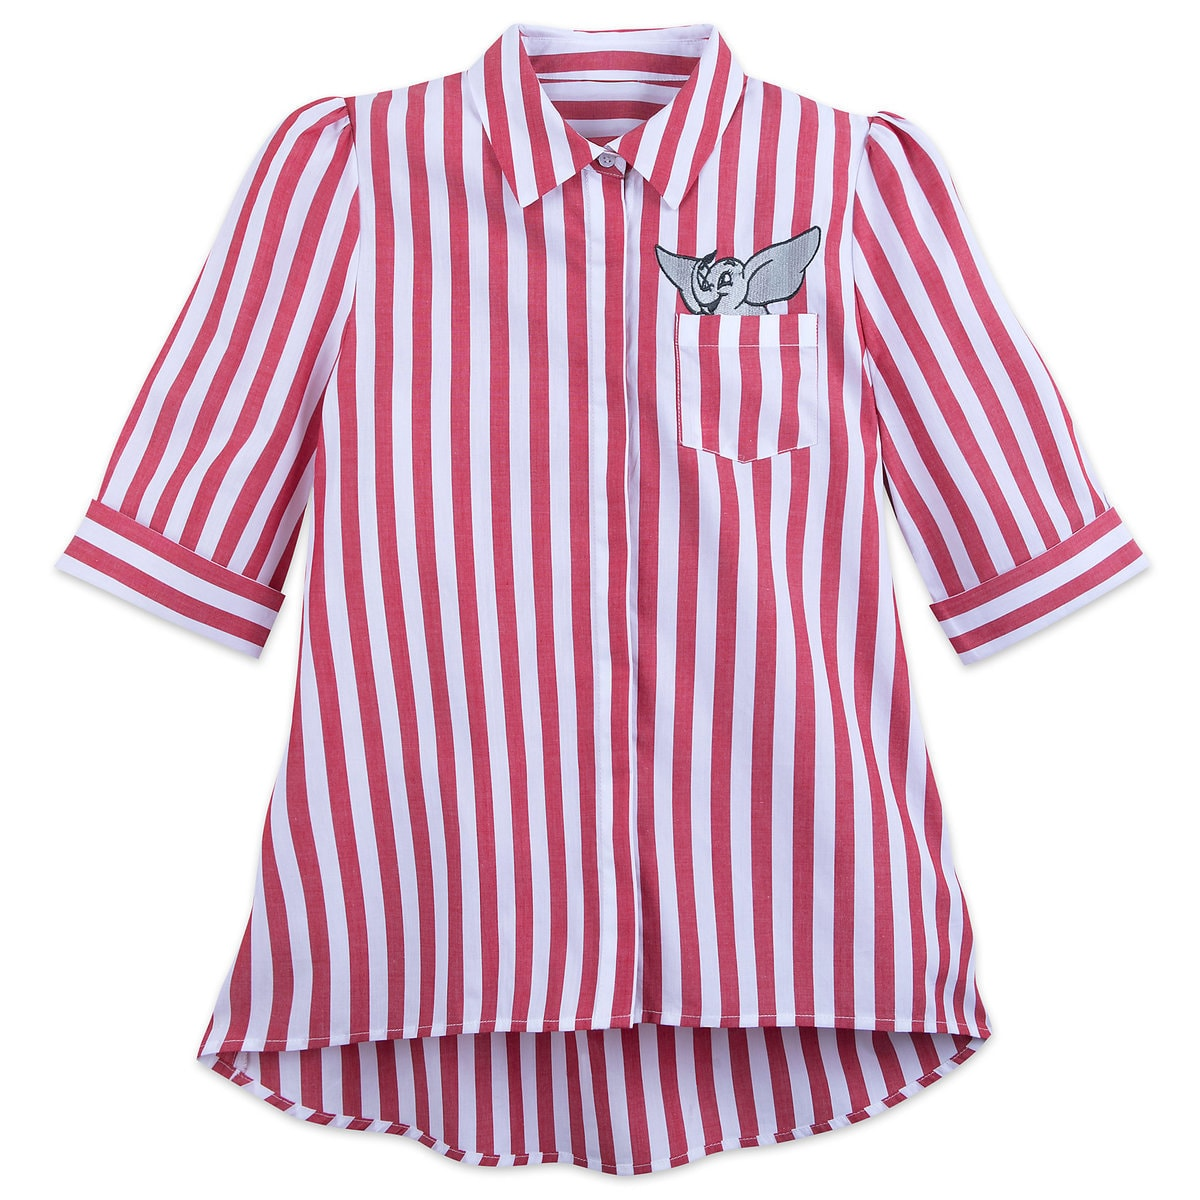 40bcbdd5070f11 Product Image of Dumbo Striped Button-Up Shirt for Women - Live Action Film  #